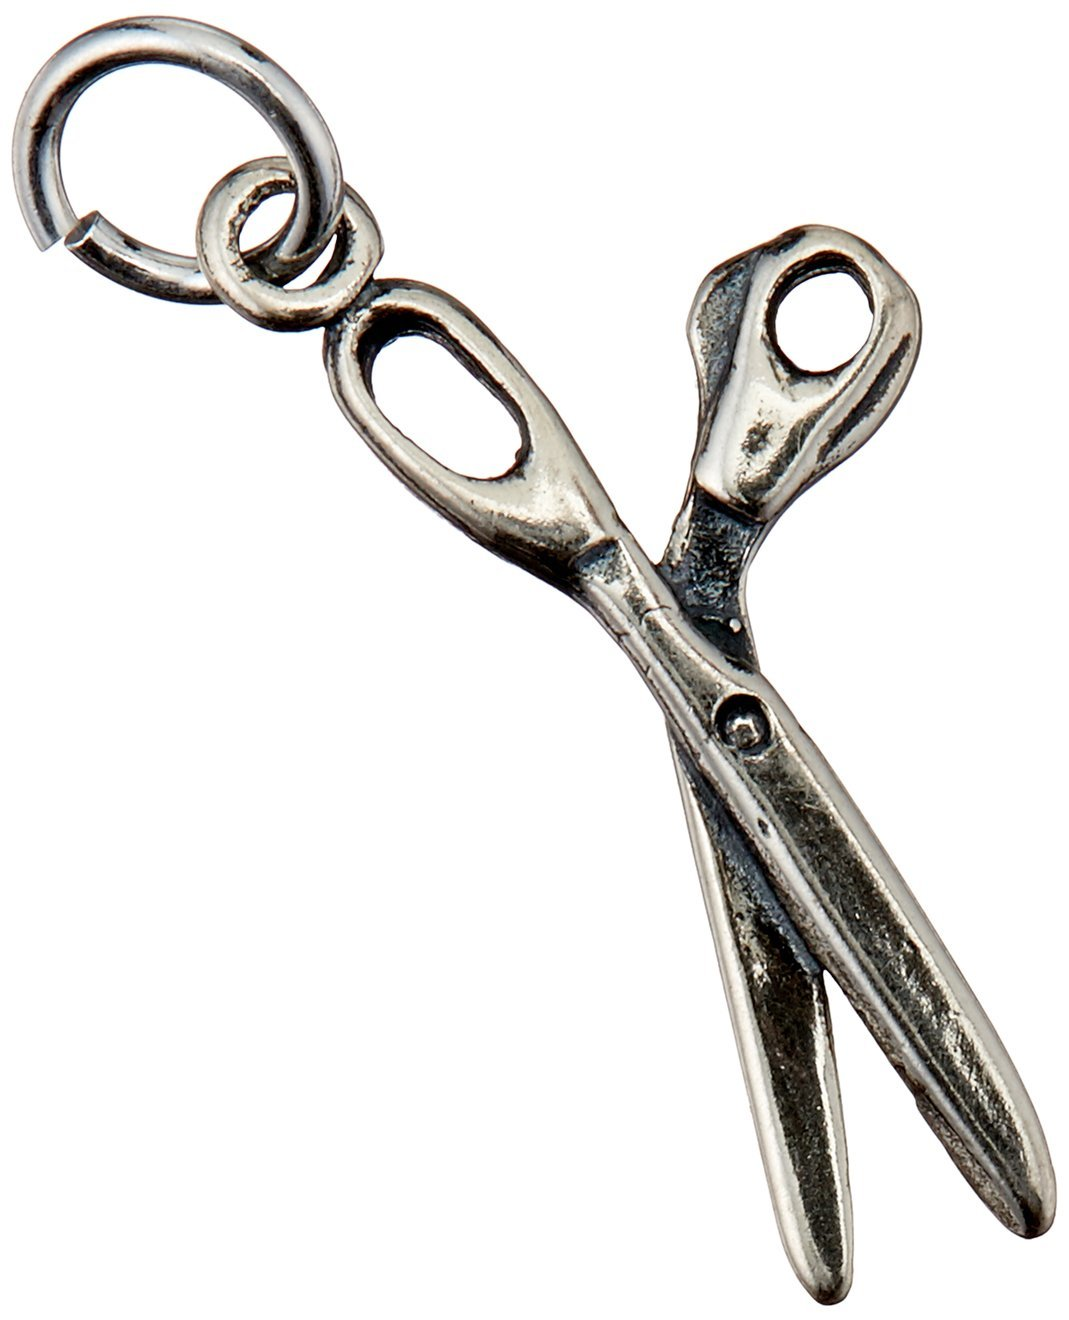 62a0f3f24 Get Quotations · Beadaholique Sterling Silver Charm Sewing, Quilting and  Scrapbooking Hobby Scissors, 24mm